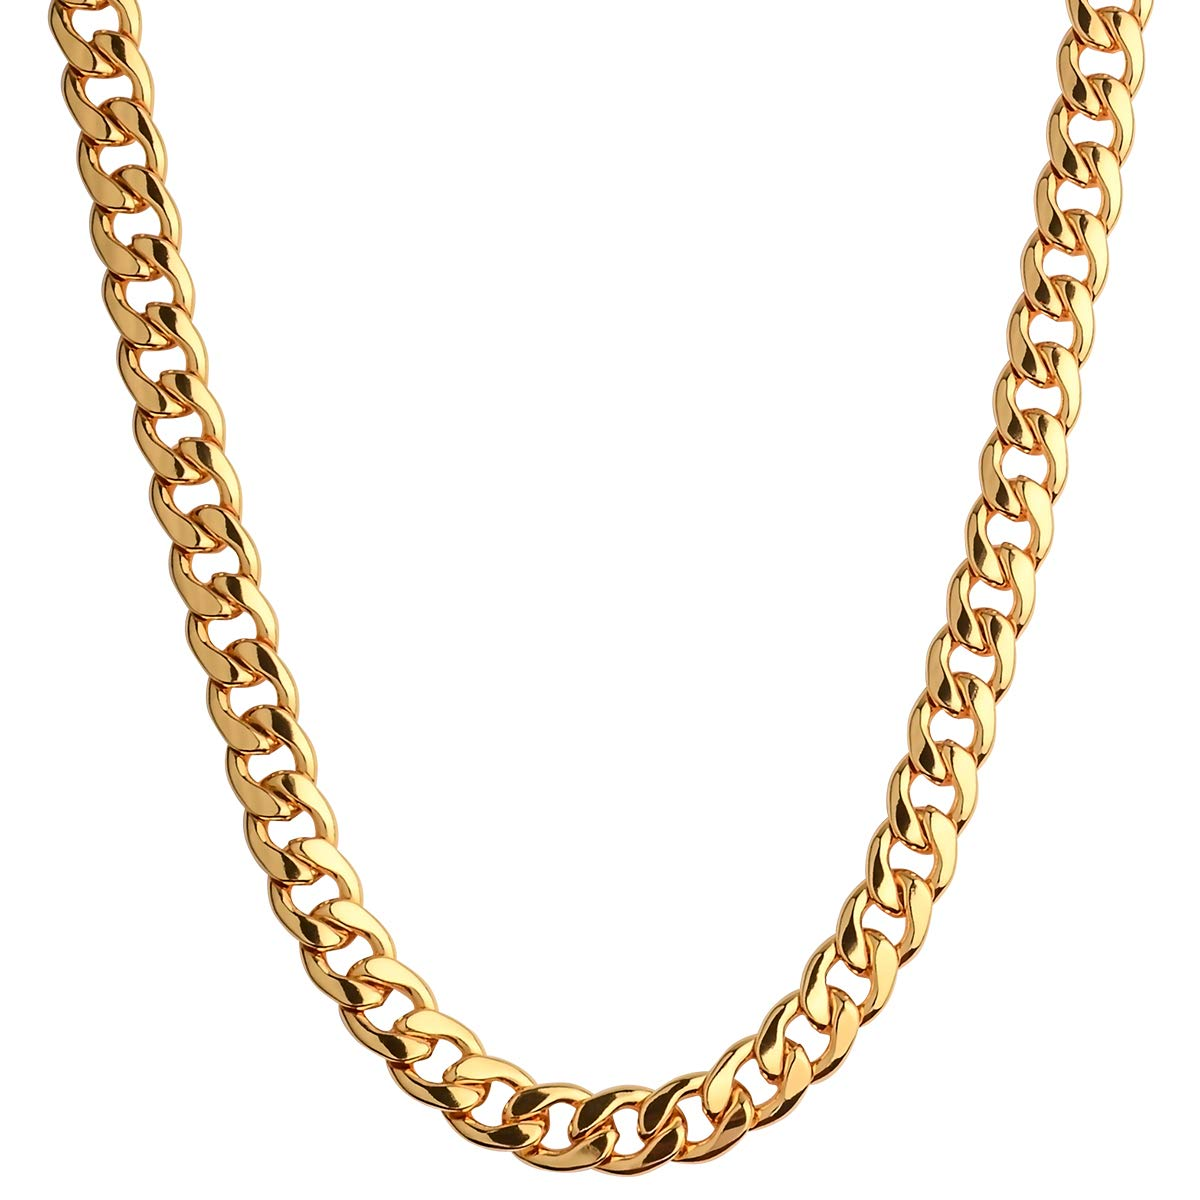 a16b89a64cce30 CrazyPiercing 18K Gold Plated Necklace Men Jewelry 10MM Wide Hip Hop  Turnover Chain Necklace, Stainless Steel 24